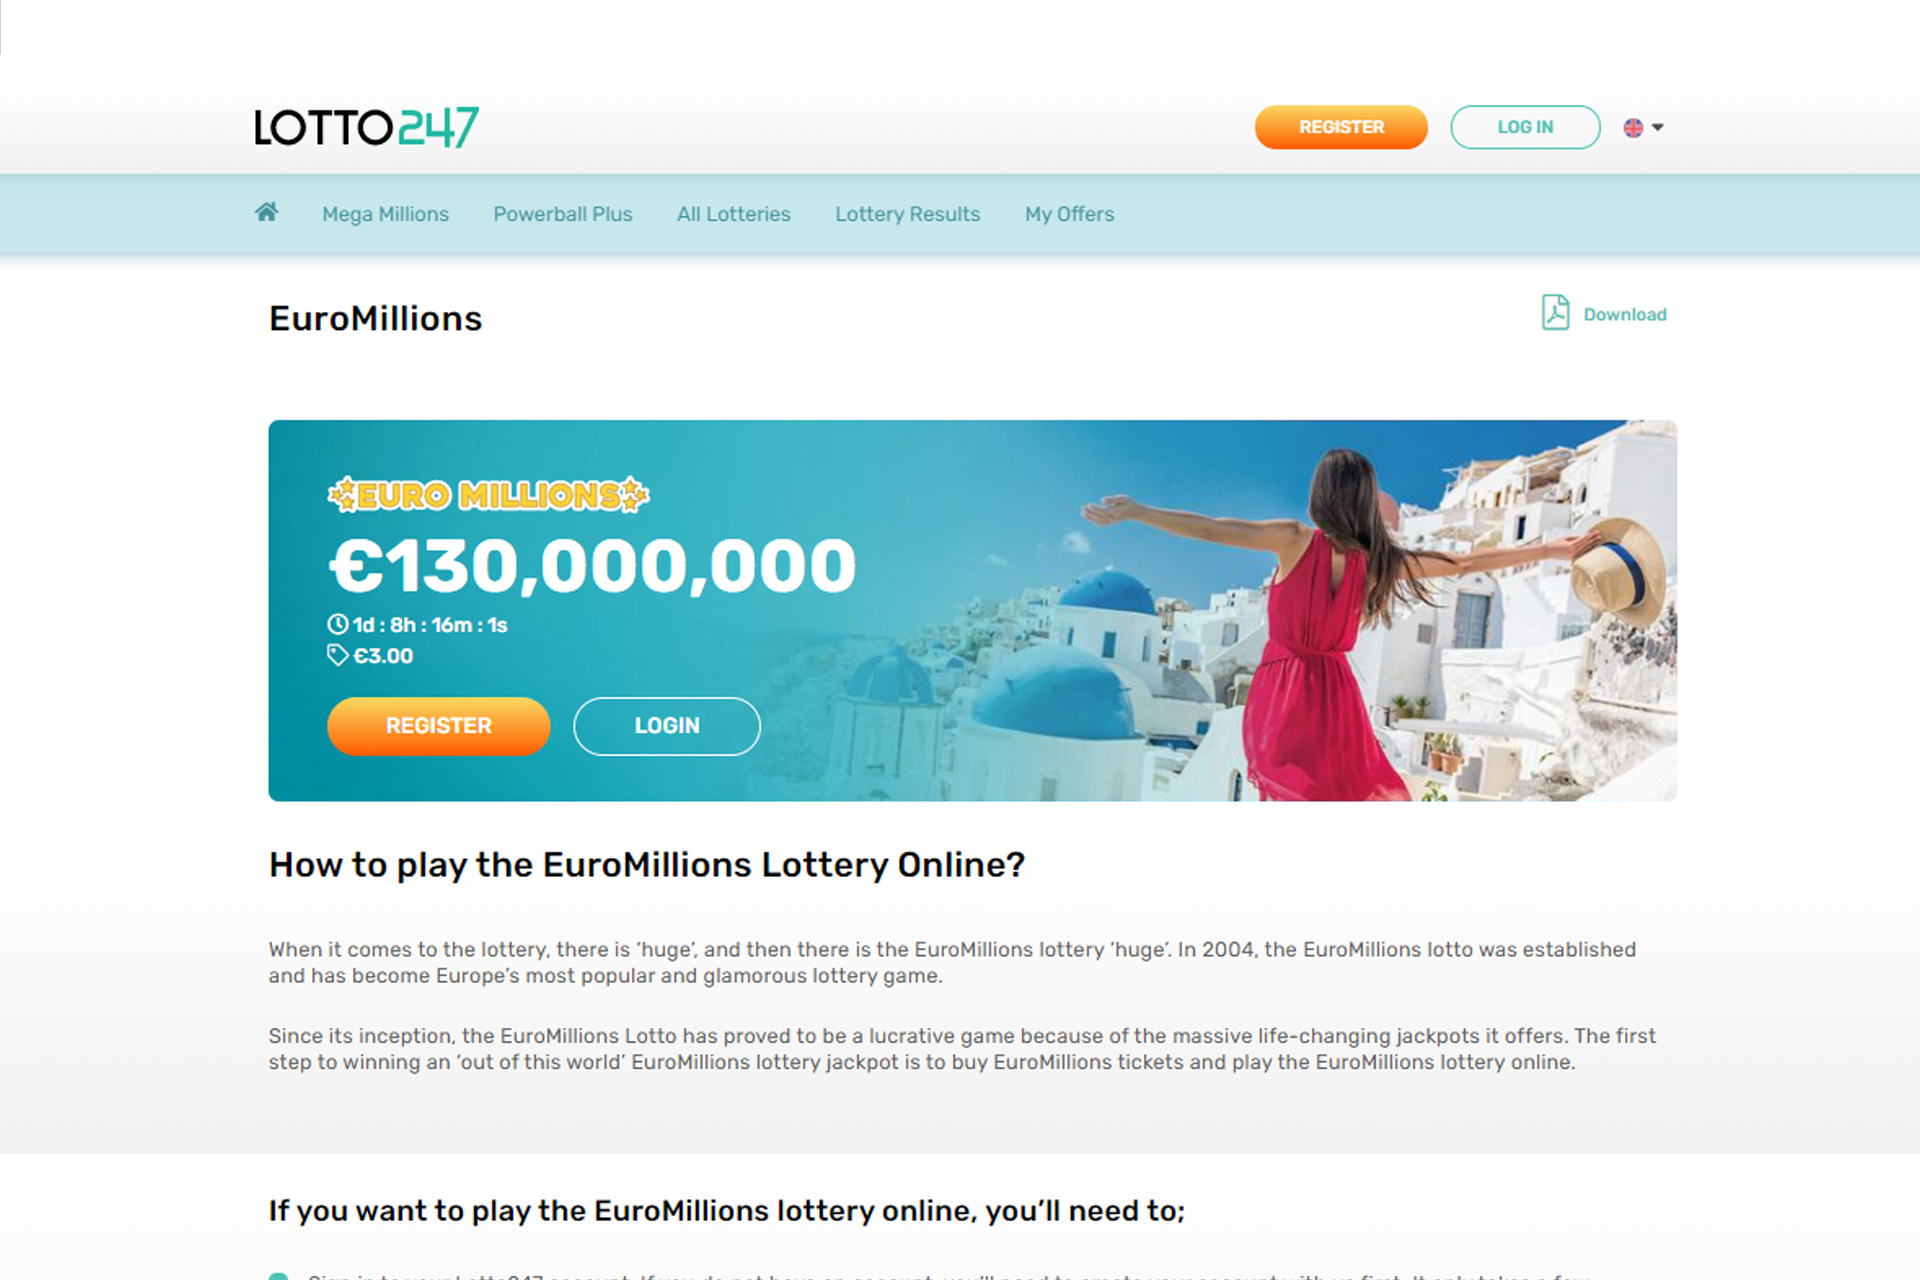 EuroMillions is a great chance to win a huge award of over 100 million euros.